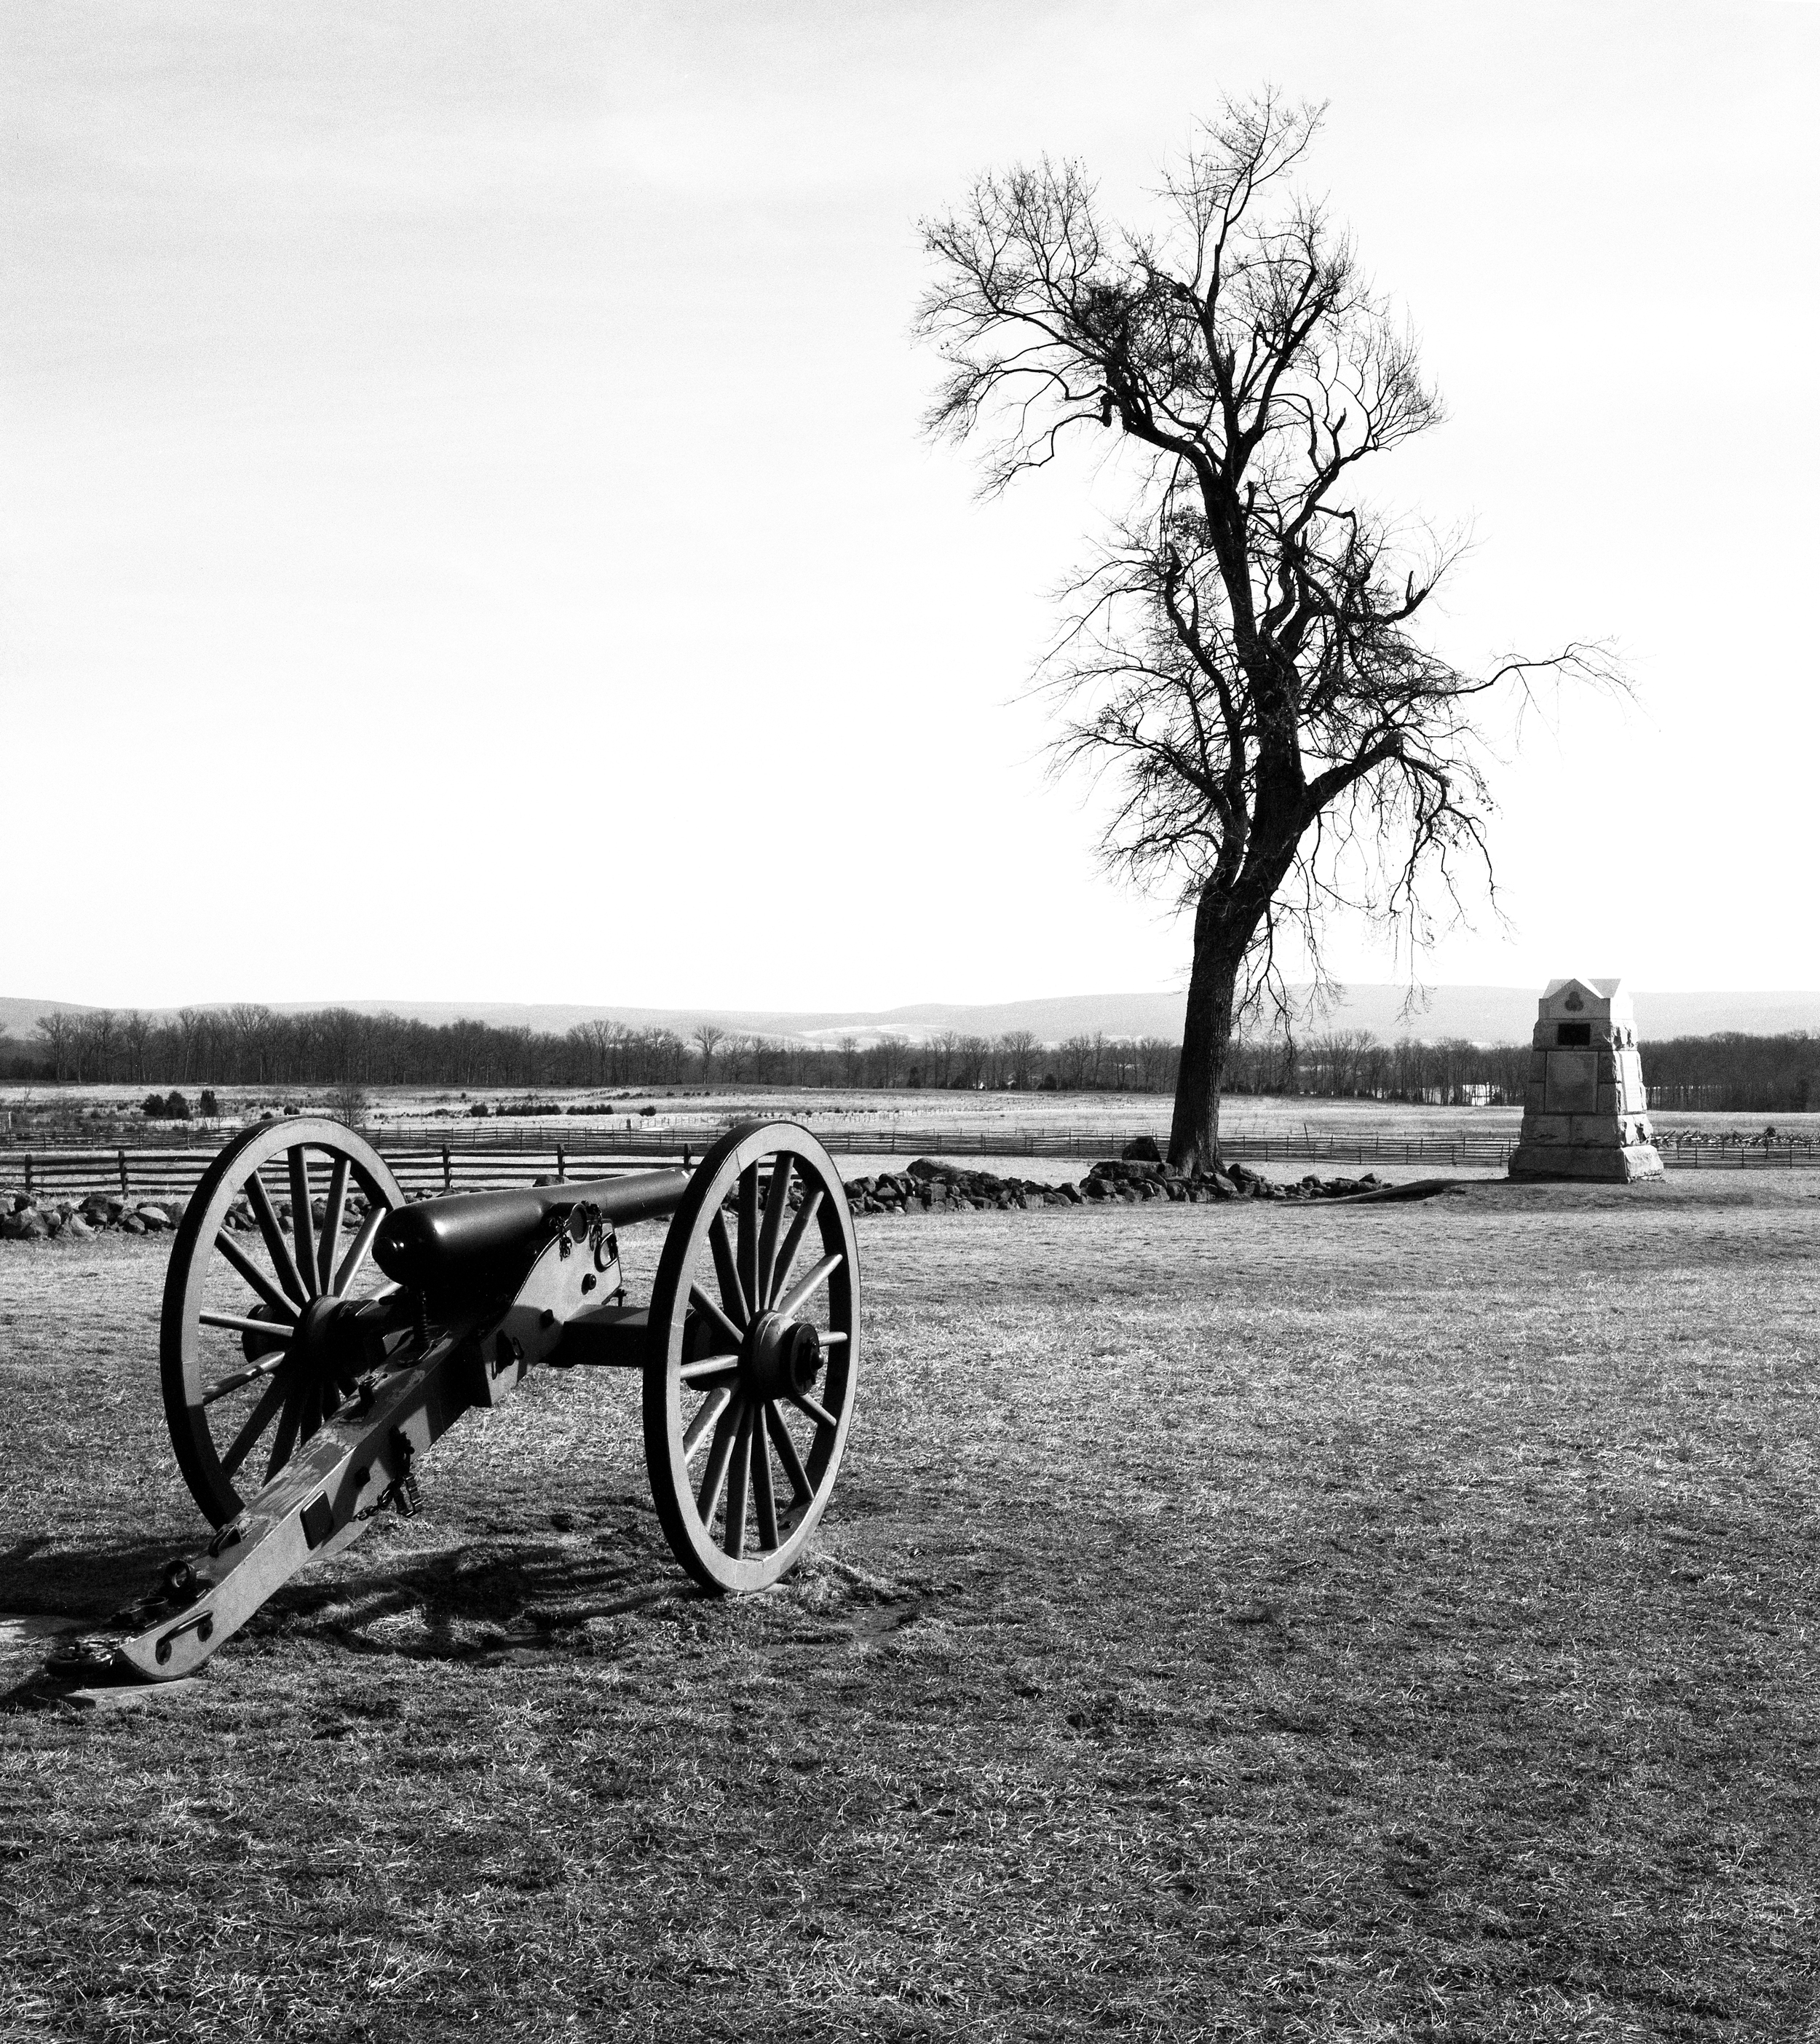 4x5_for_365_project_087_Gettysburg_cannon_and_tree.jpg